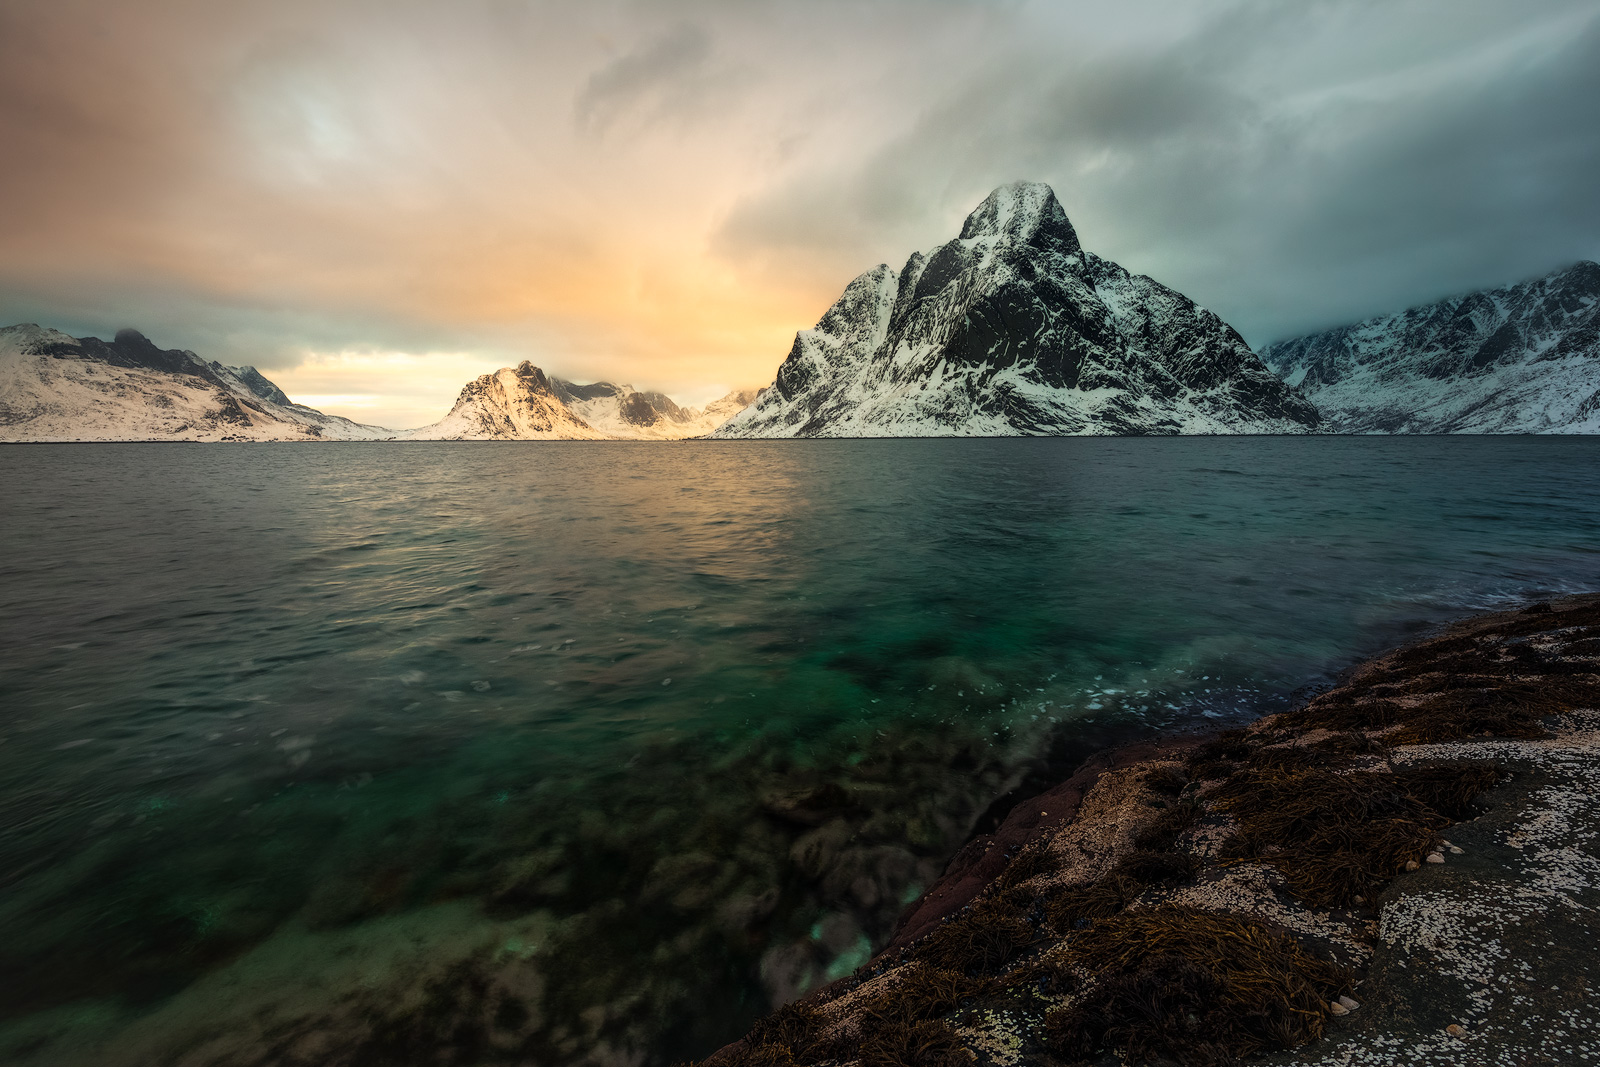 2017, beach, beautiful, coast, europe, evening, ice, lake, landscape, lofoten, majestic, moskenesøy, mountain, mountain range, norway, olstind, peak, scandinavia, scenic, seascape, snow, snowy, sunset, photo